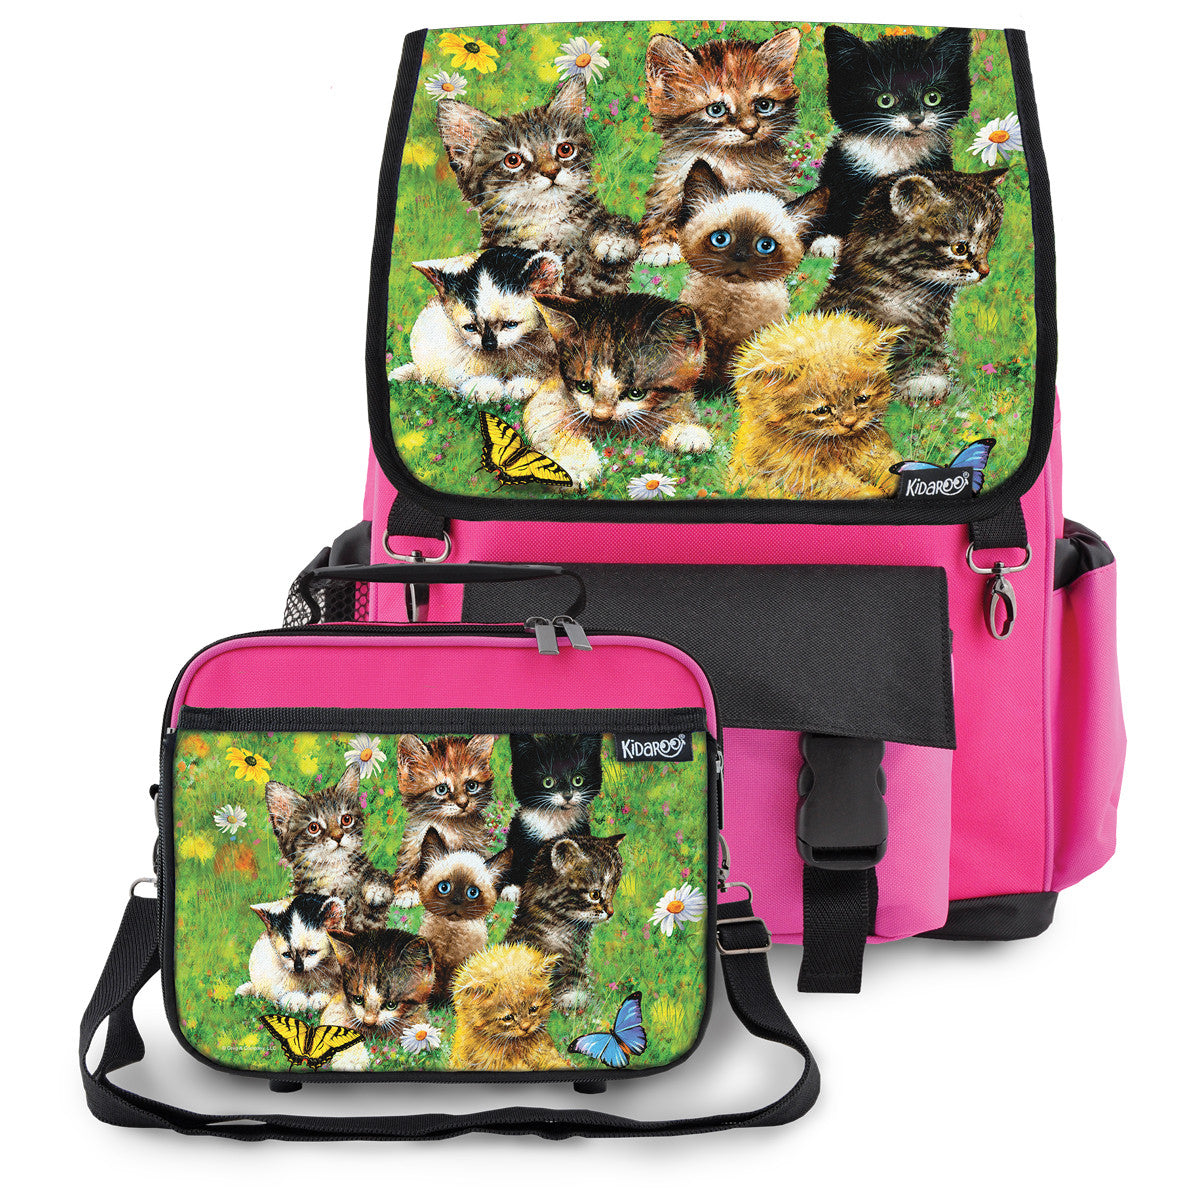 Kidaroo Pink Cute Little Kittens School Backpack & Lunchbox Set for Boys, Girls, Kids